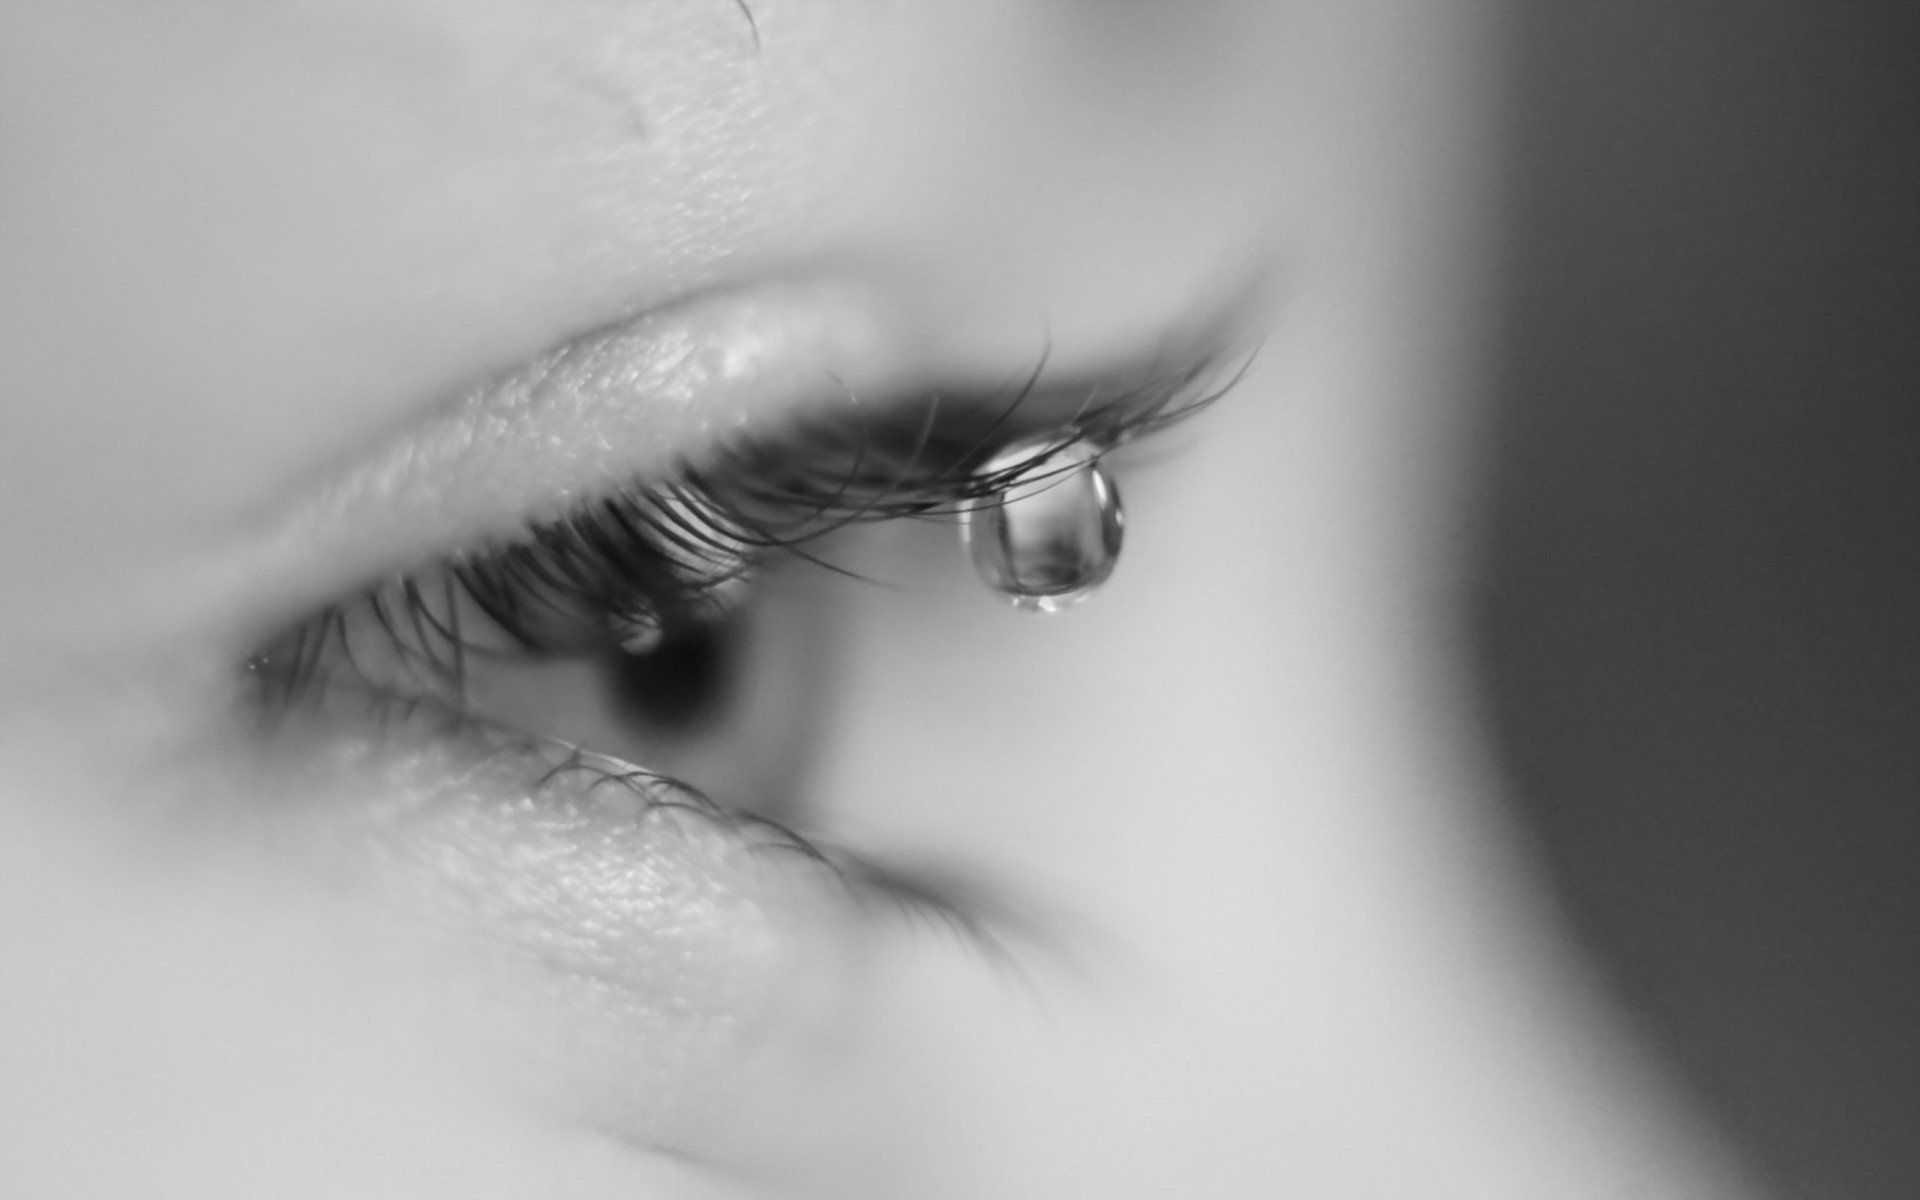 1920x1200 tears close up mood HD wallpaper